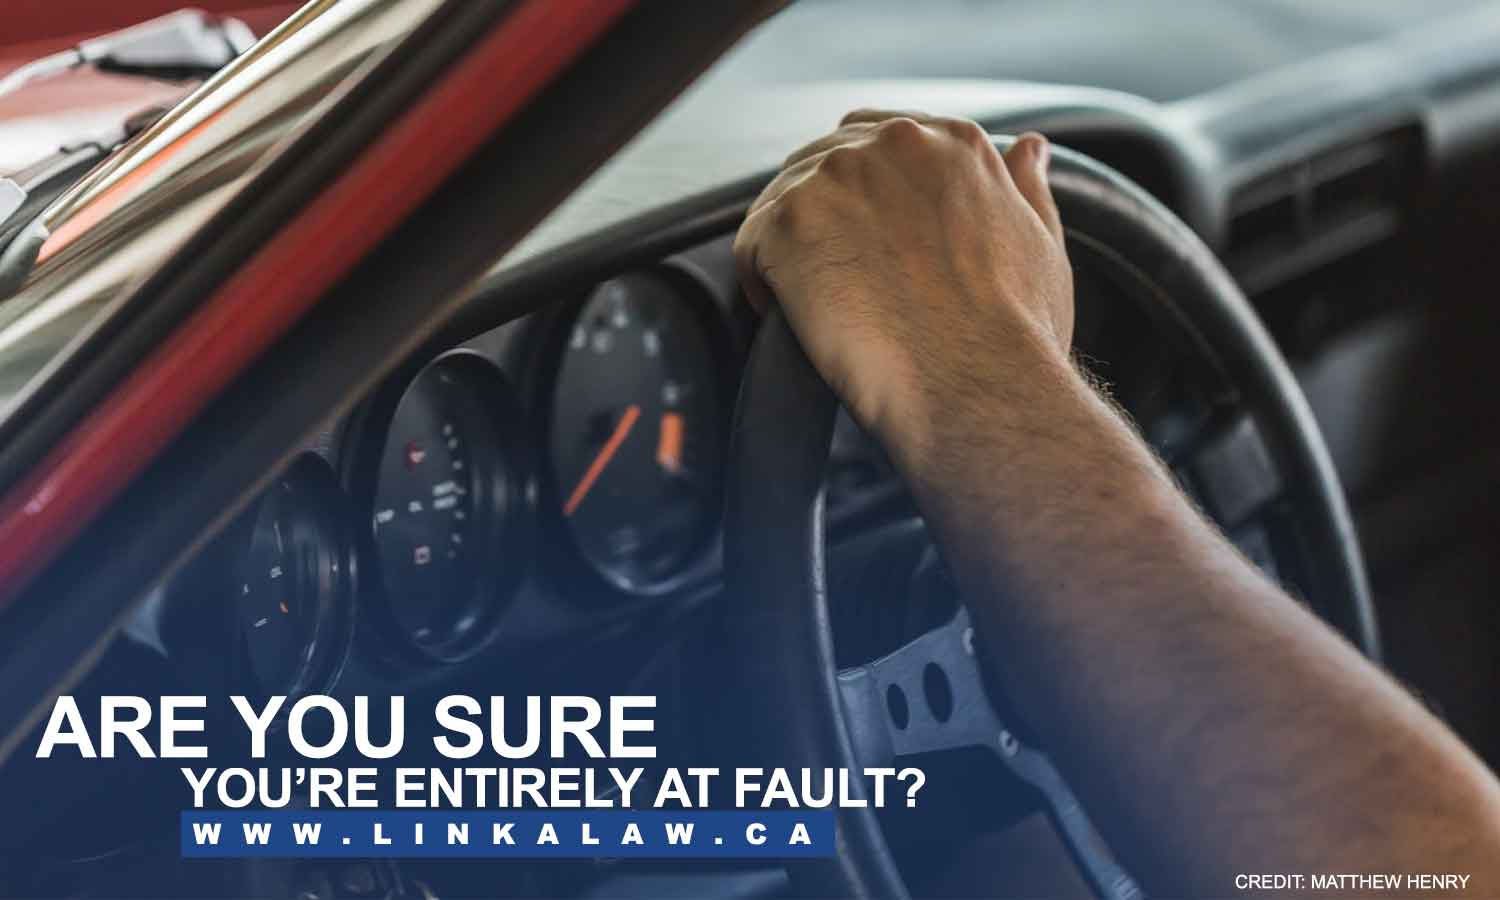 Are you sure you're entirely at fault?